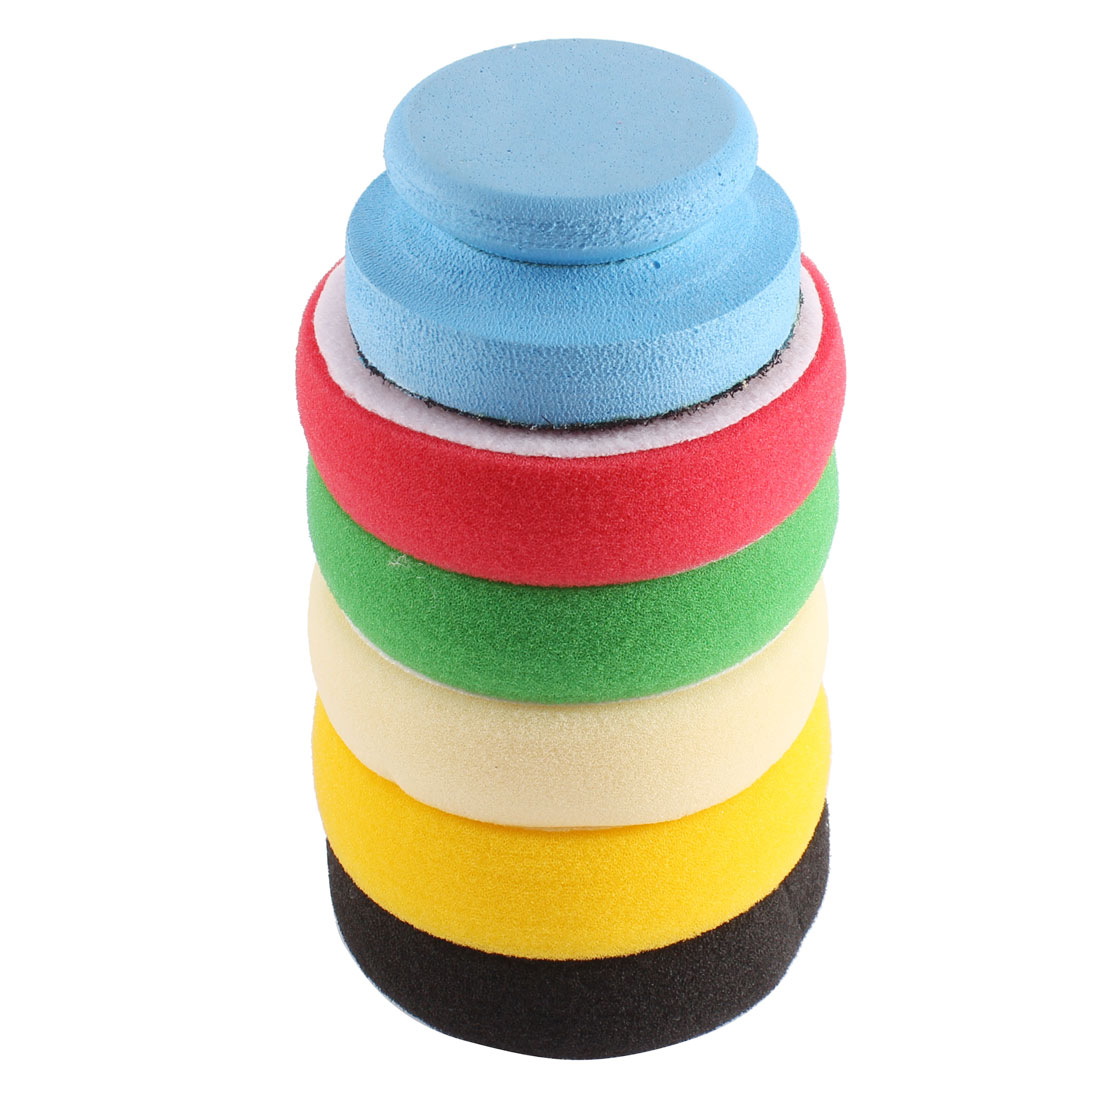 5 Pcs 90mm Dia Colorful Car Body Detailing Waxing Polishing Sponge Pad w Handle